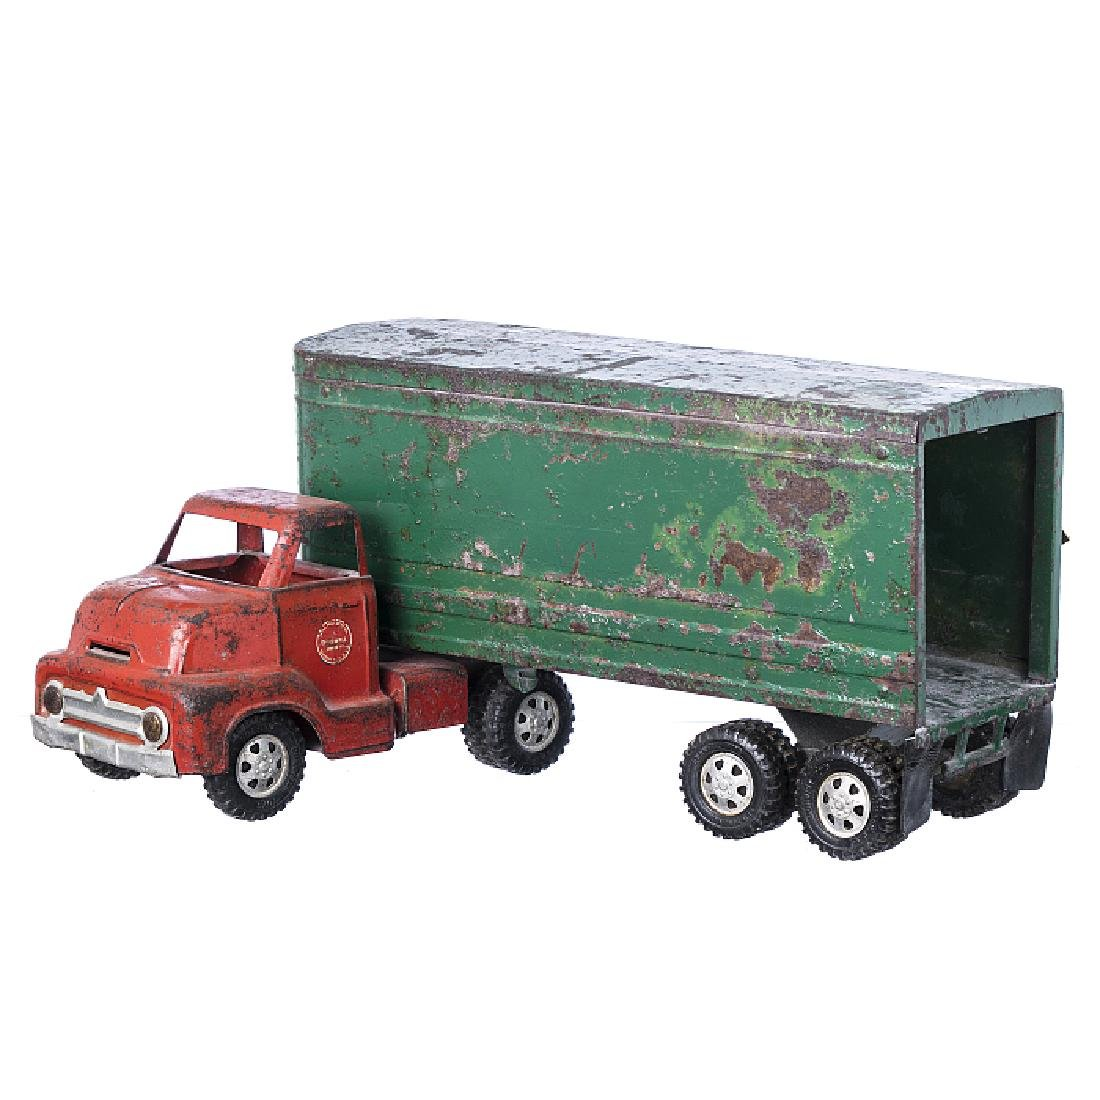 DUNWELL TOYS - Toy truck